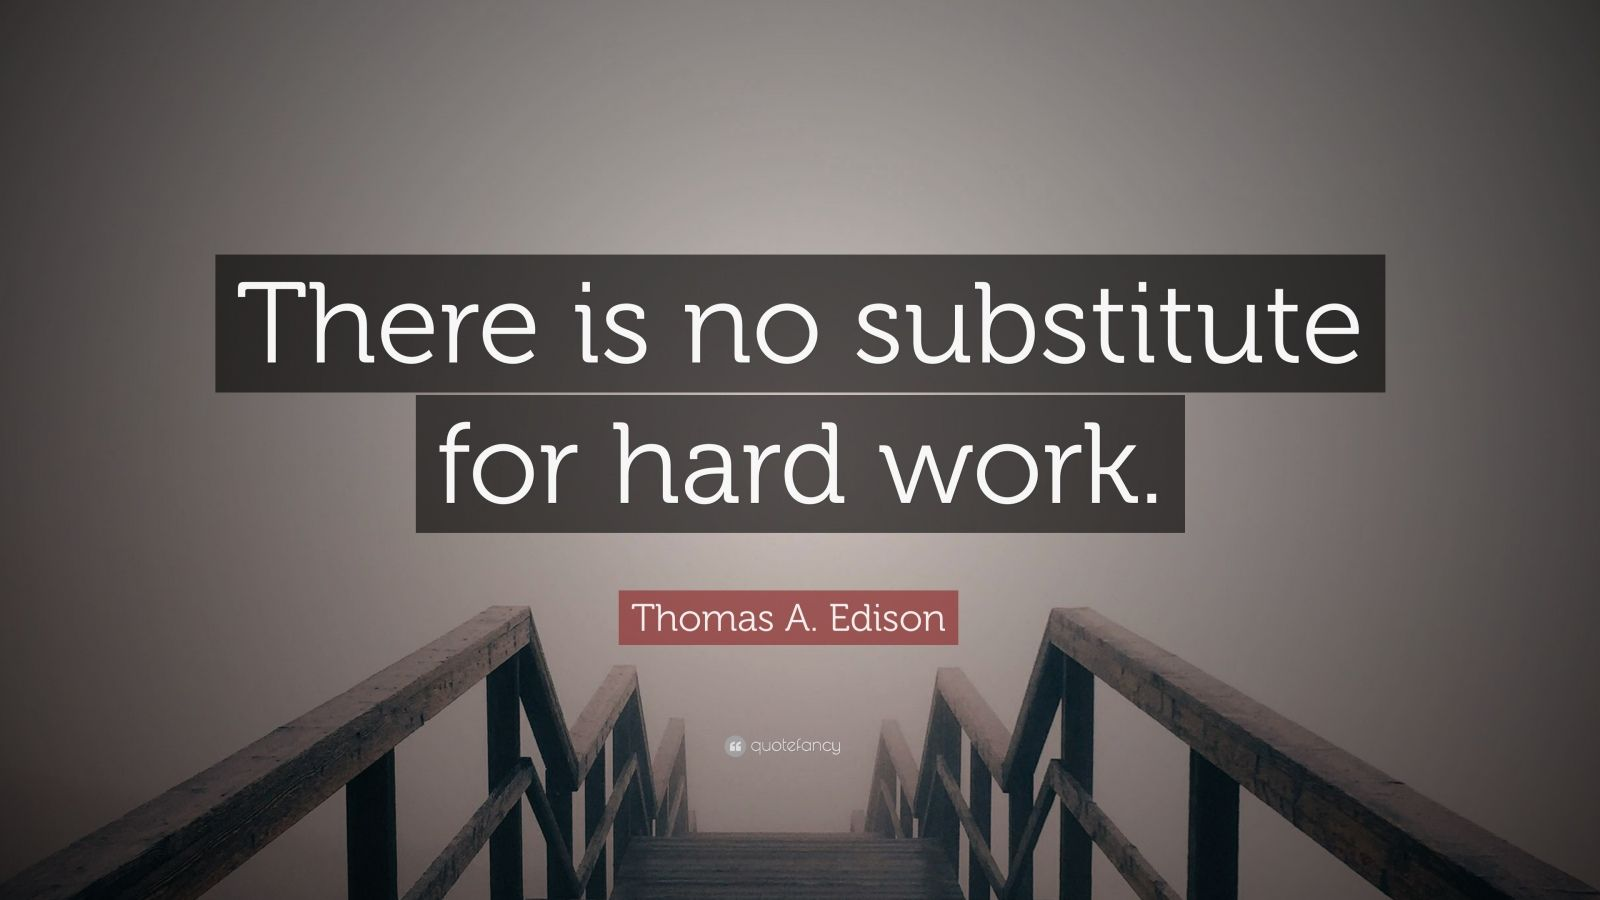 Thomas A Edison Quote There is no substitute for hard